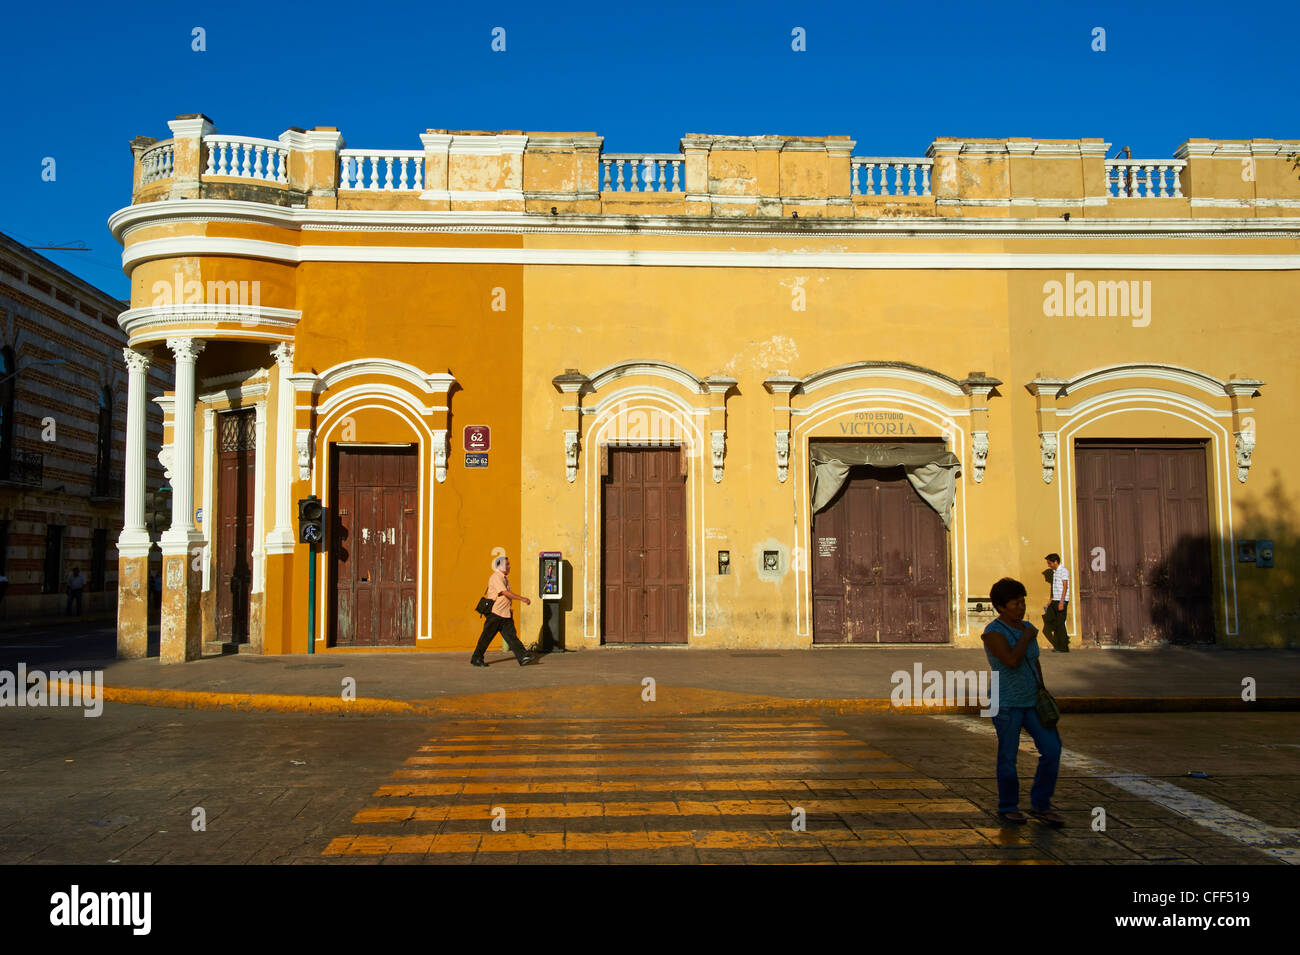 Square of Independence, Merida, the capital of Yucatan state, Mexico, - Stock Image